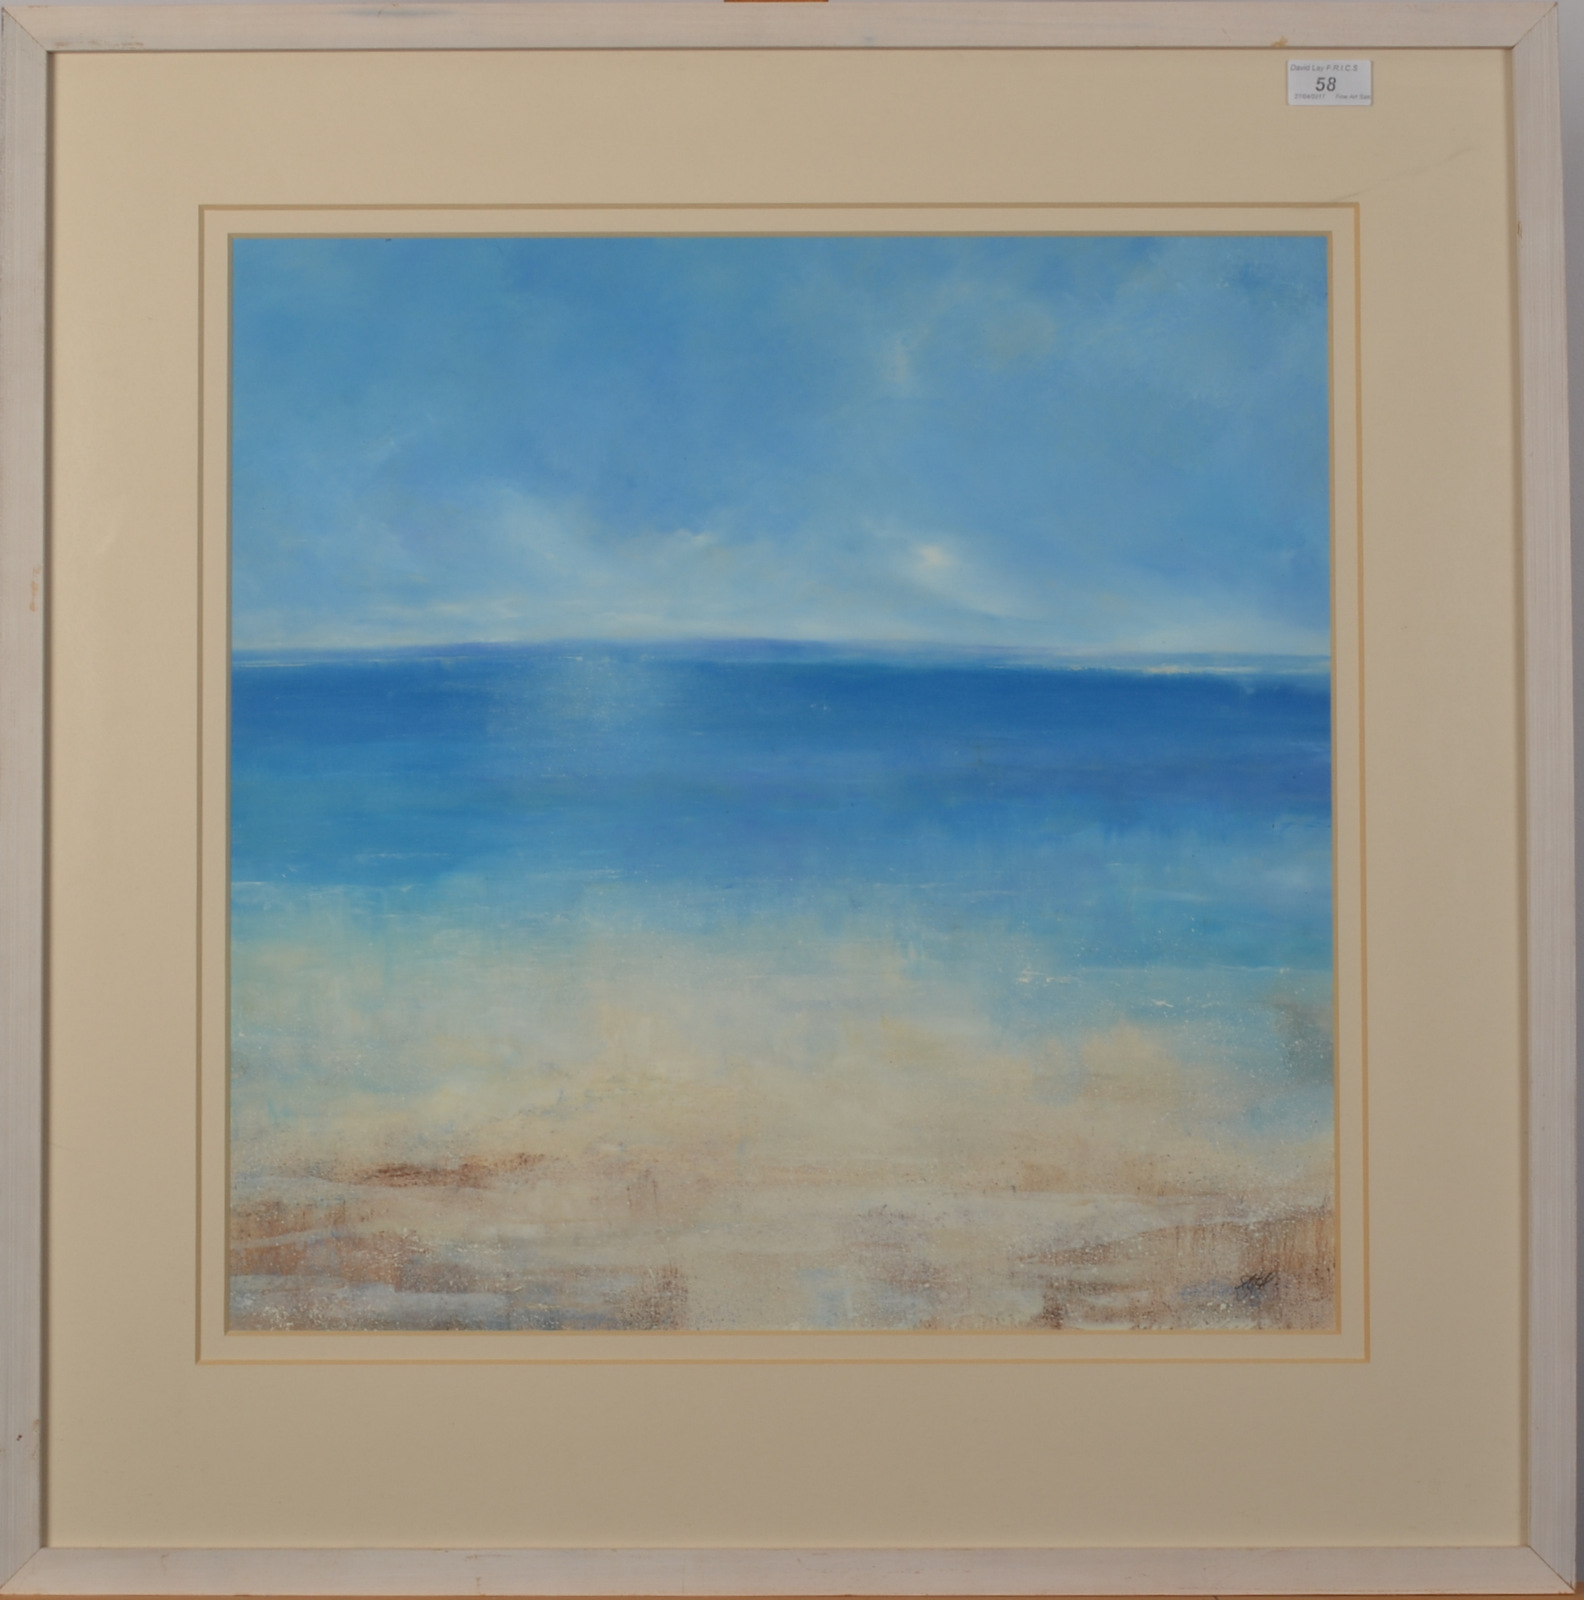 Lot 58 - AMANDA HOSKIN Falmouth Bay Oil on board Signed Titled dated and signed on the back 2001 50 x 5 cm